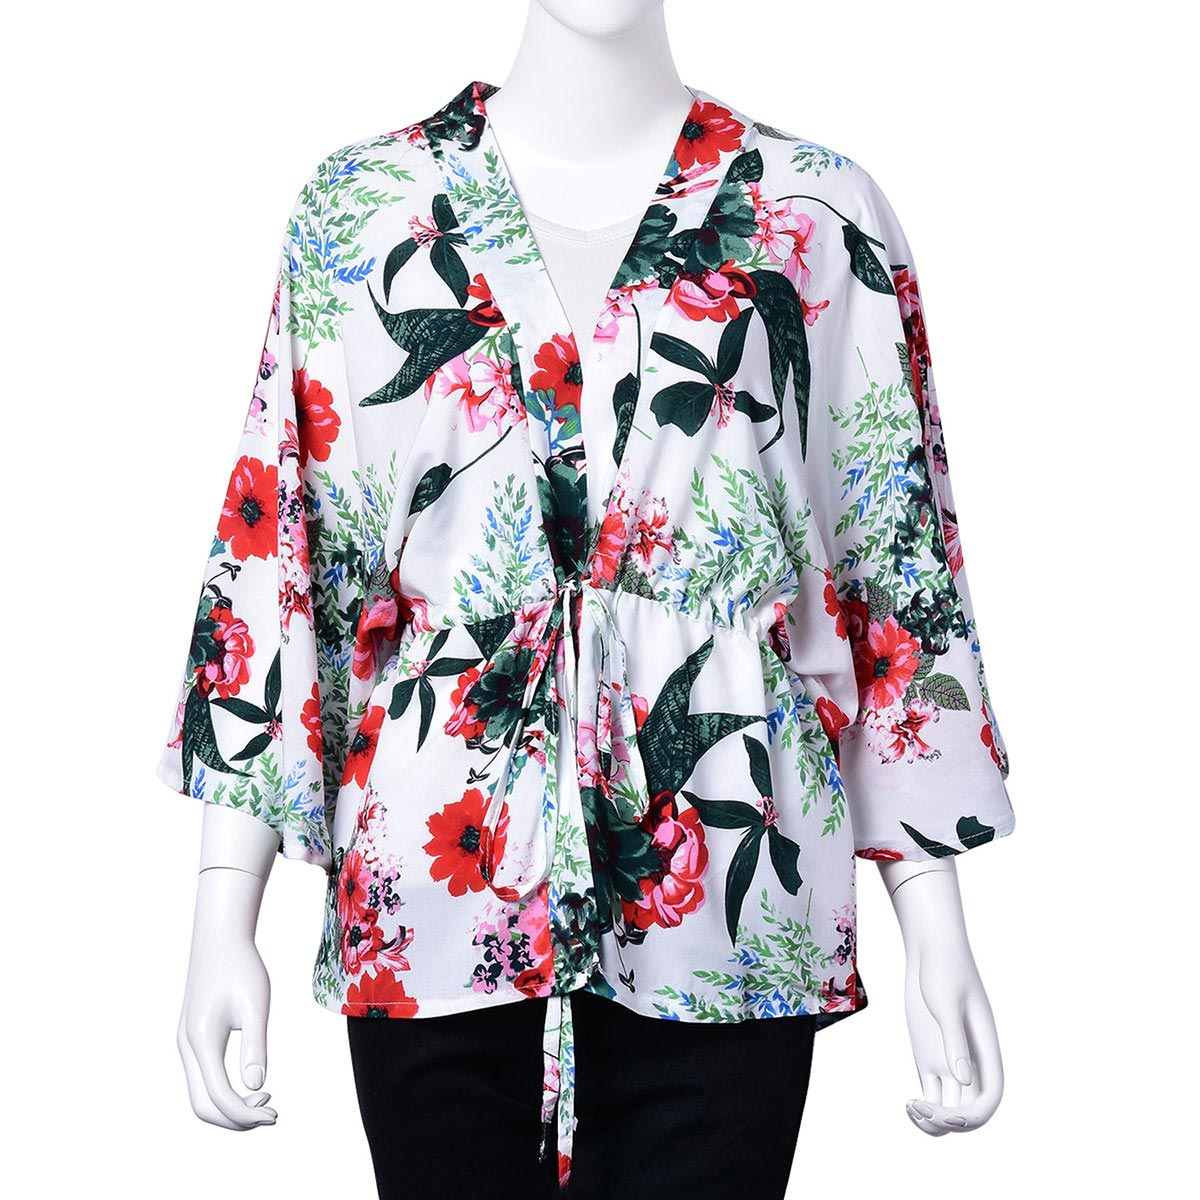 2180a21542 White 100% Viscose Multi Color Floral Open Cardigan with Belted Wrap (One  Size) ...